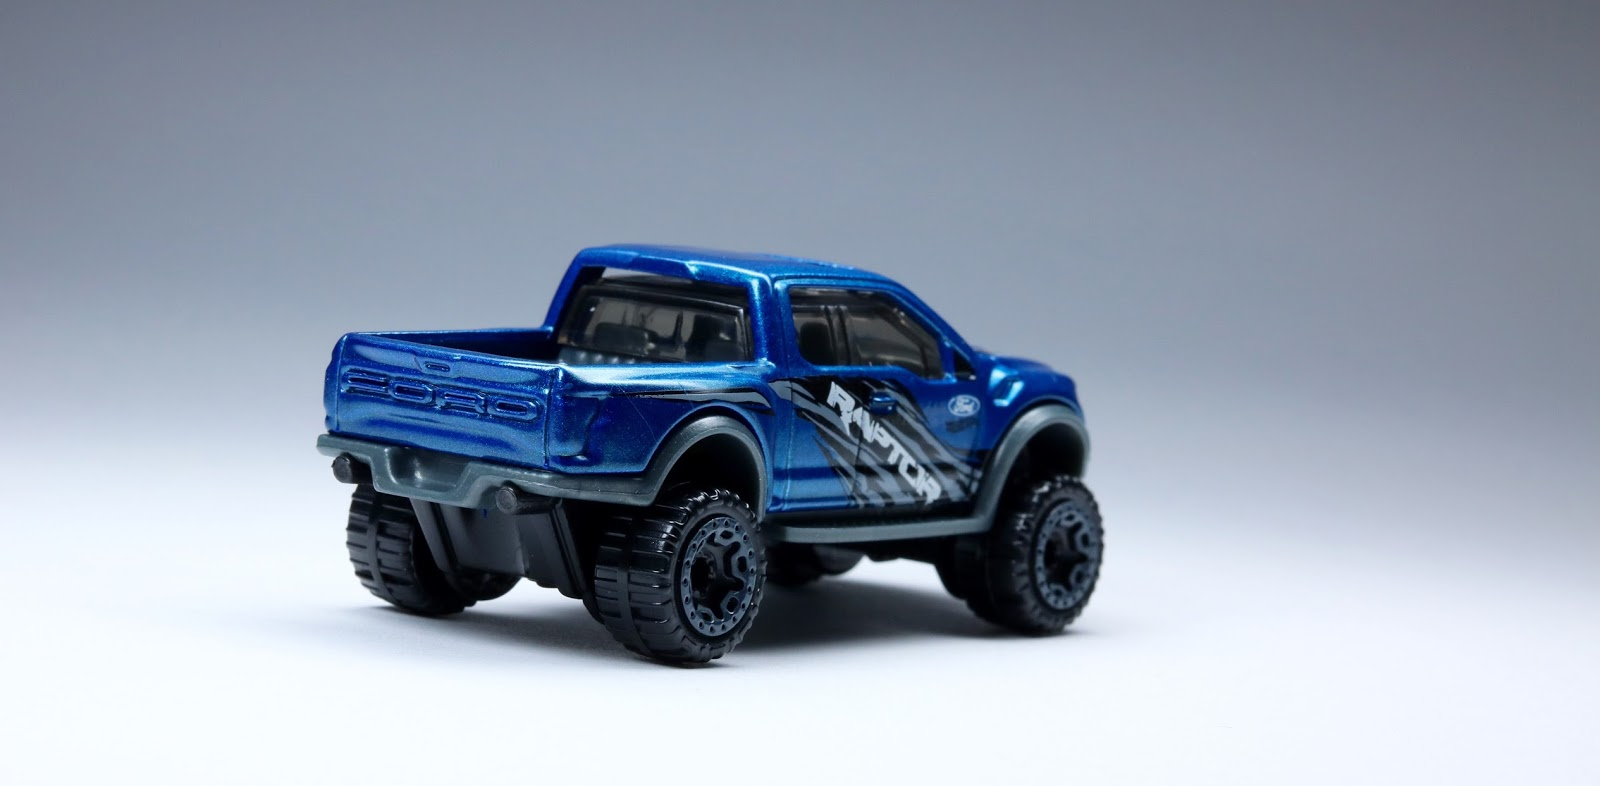 2018 Ford Raptor Hot Wheels | 2020 - 2018 Best Car Reviews